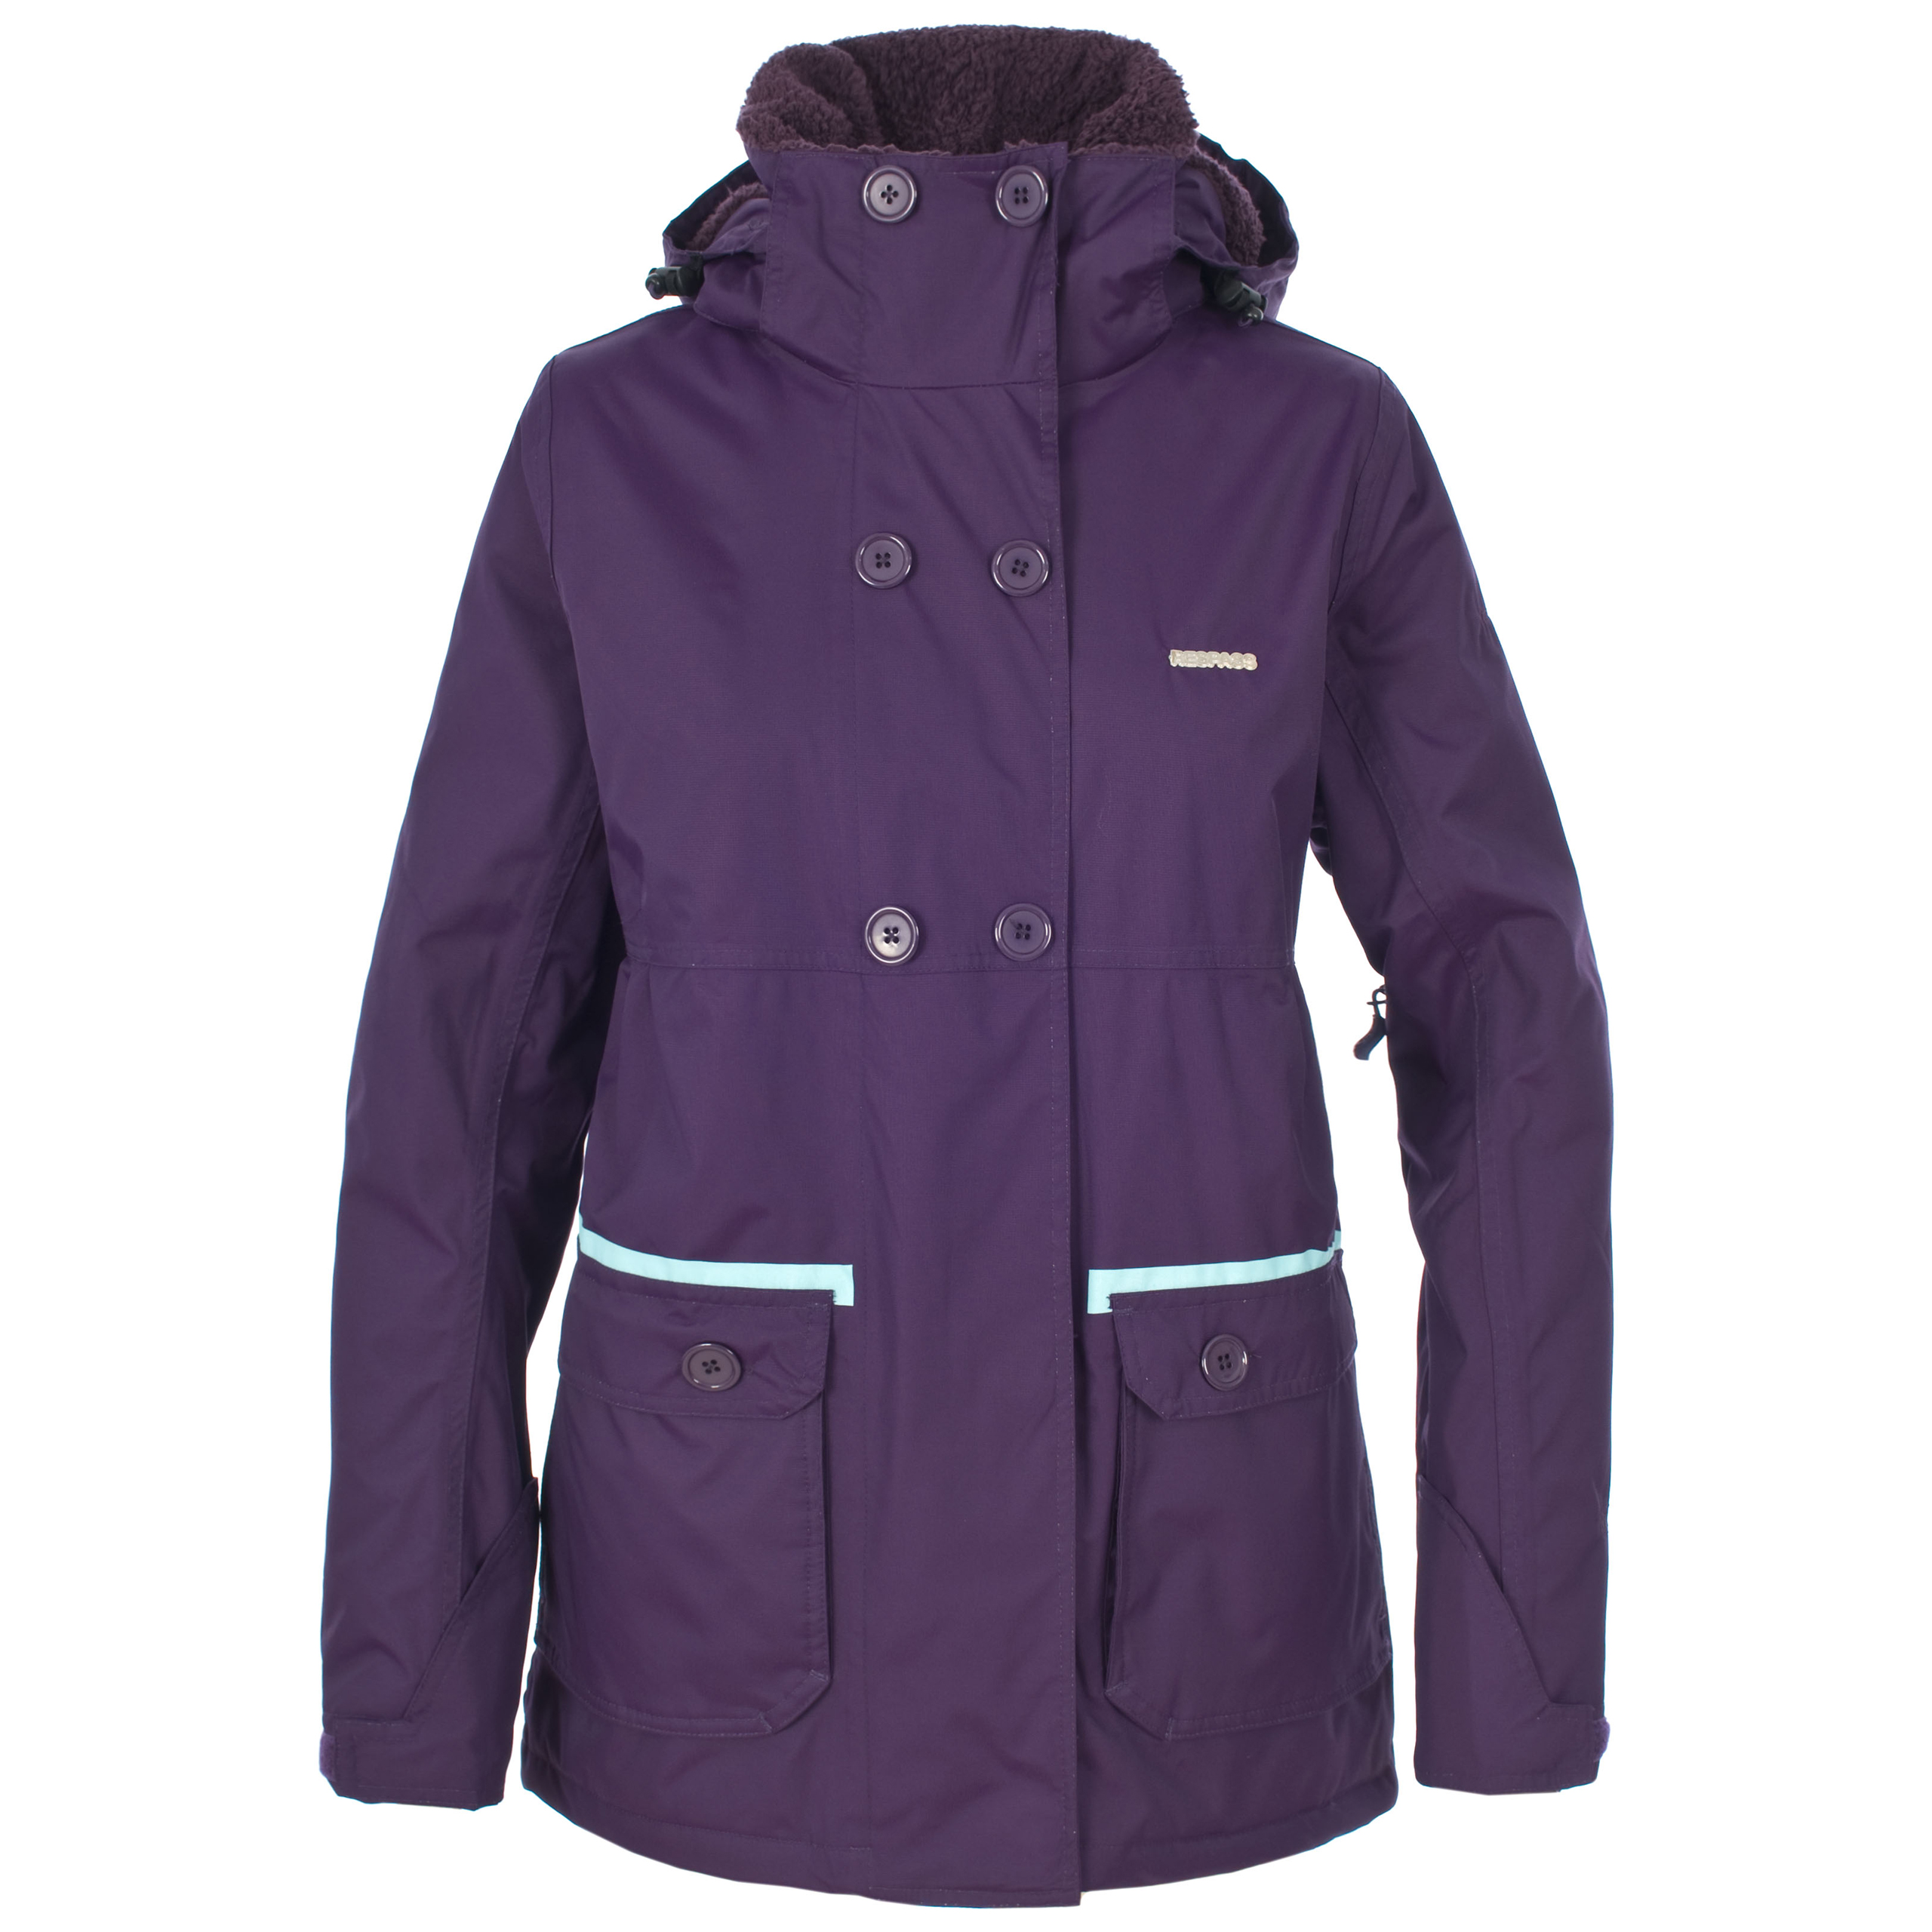 Shop for Insulated Jackets at REI - FREE SHIPPING With $50 minimum purchase. Top quality, great selection and expert advice you can trust. % Satisfaction Guarantee.